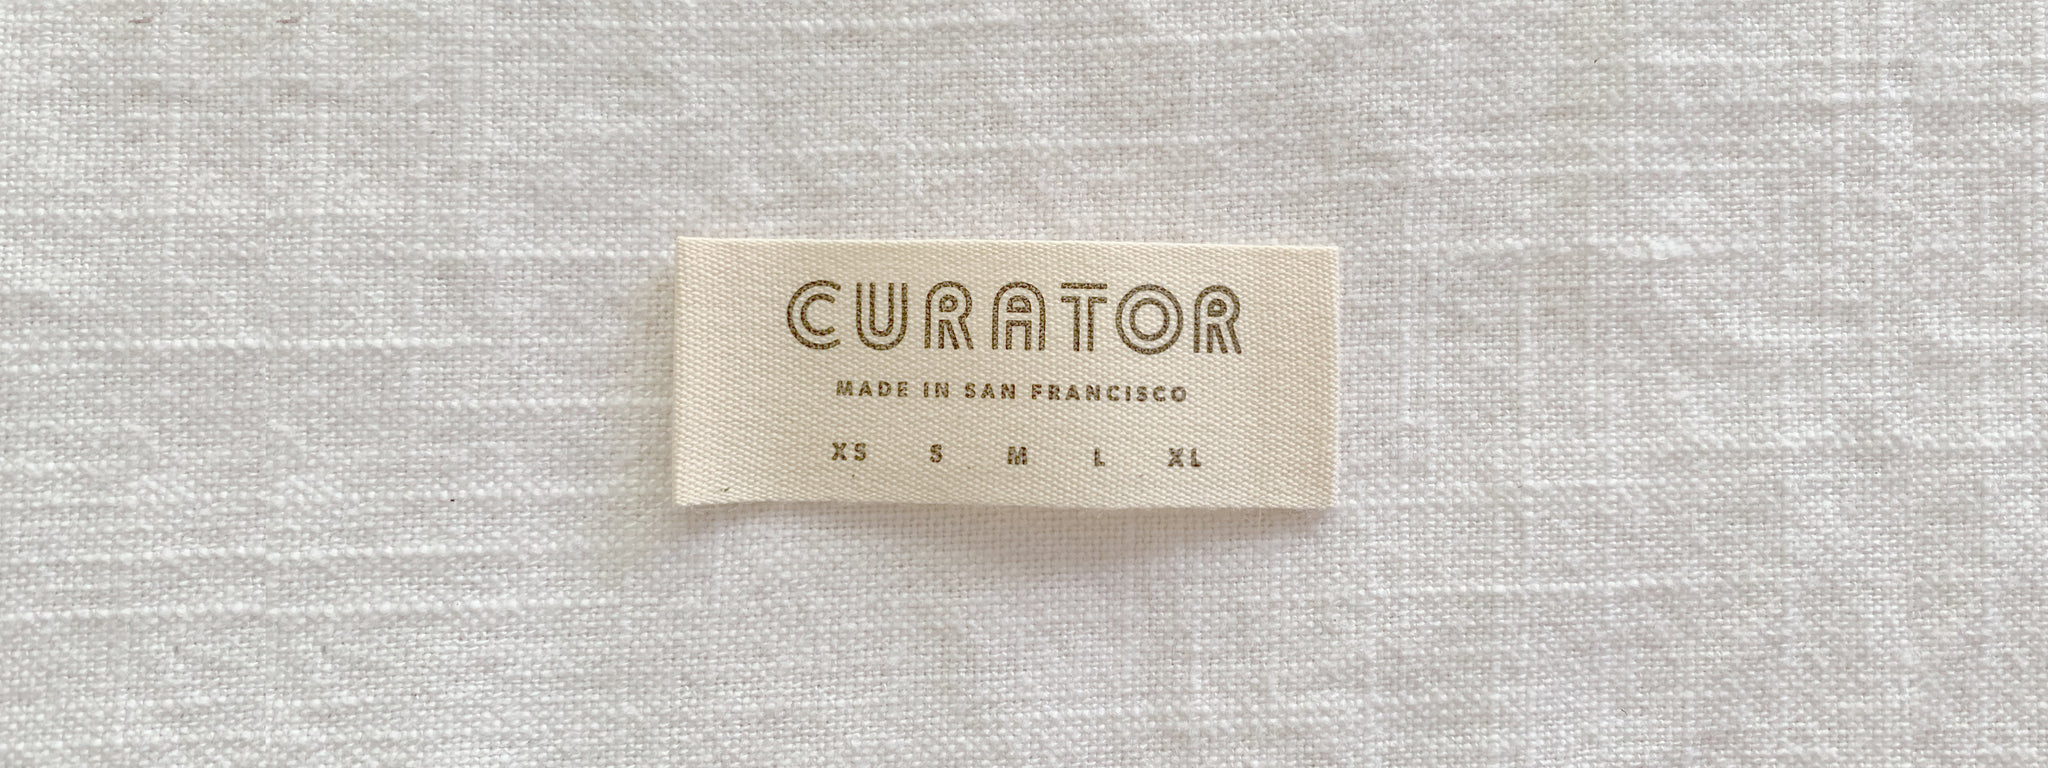 label with logo and sizes printed on it